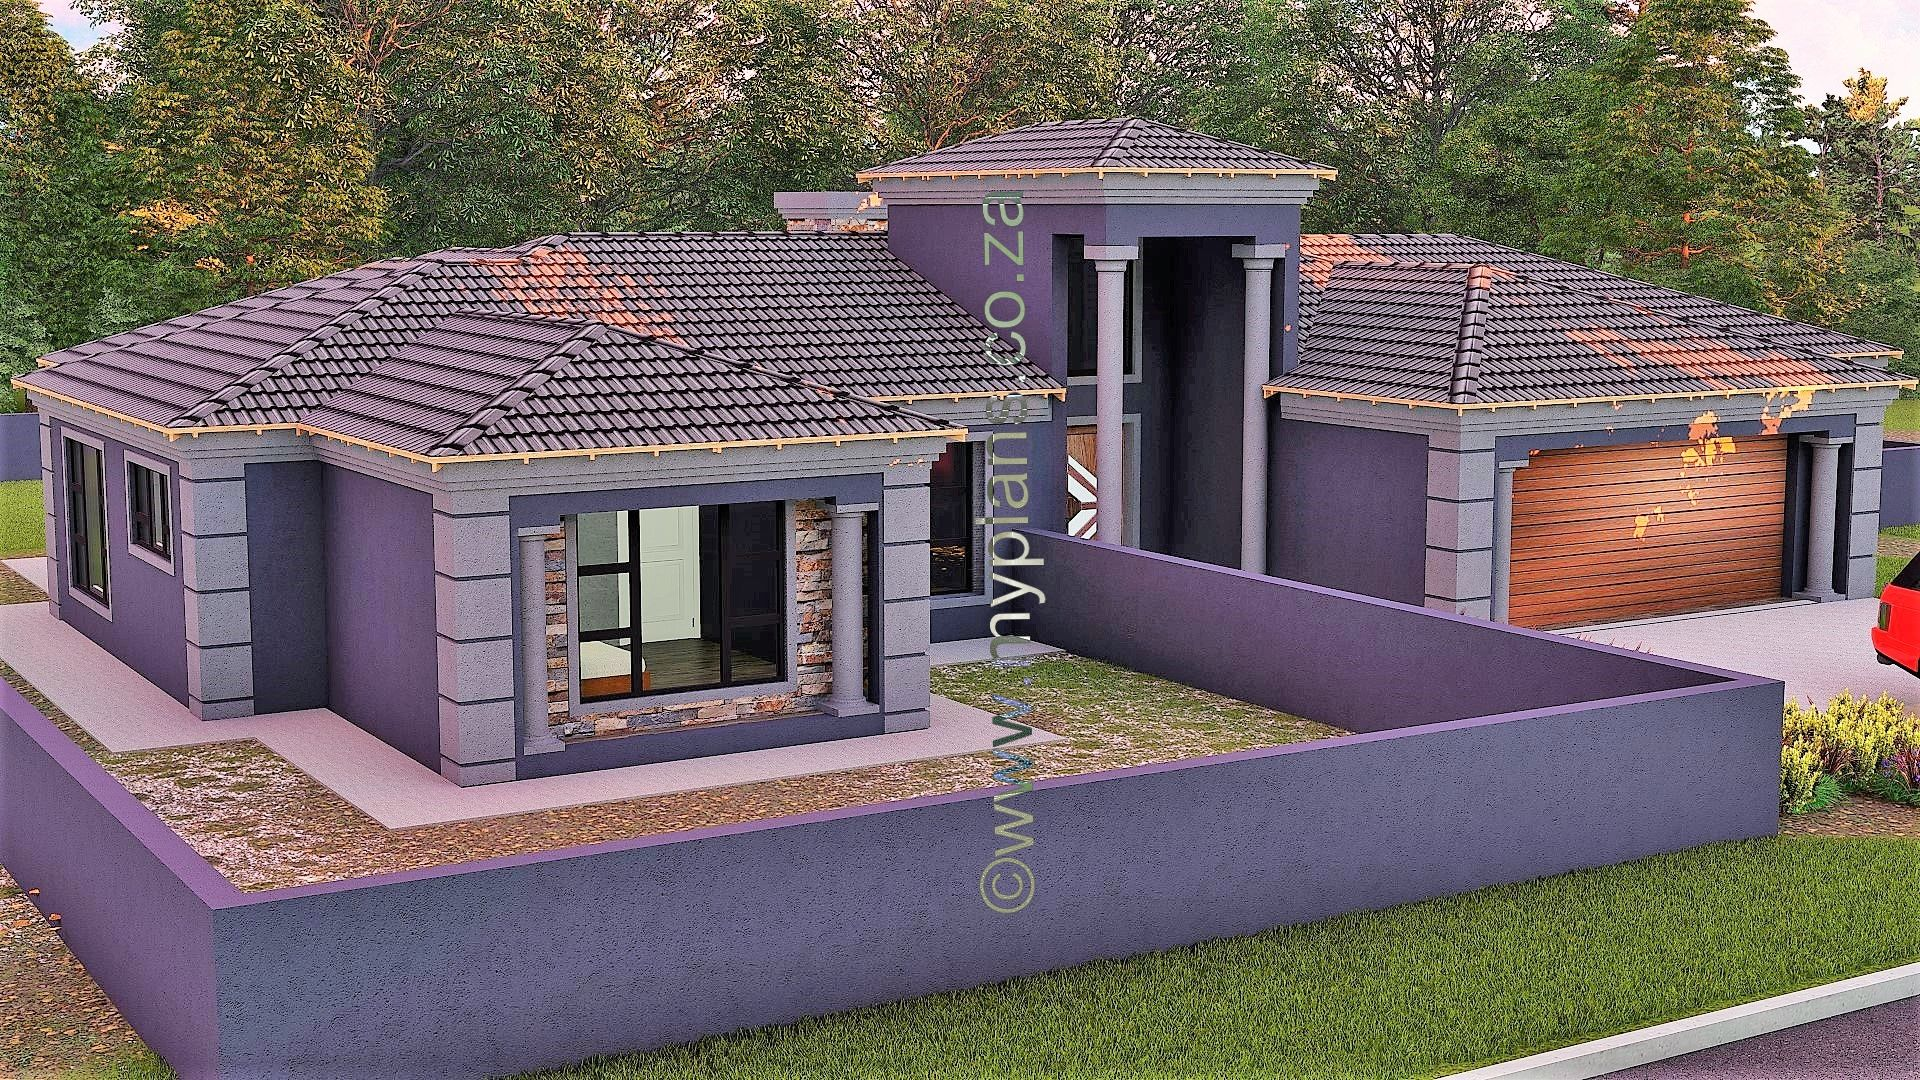 4 Bedroom House Plan Mlb 72s Bedroom House Plans Round House Plans House Plans South Africa